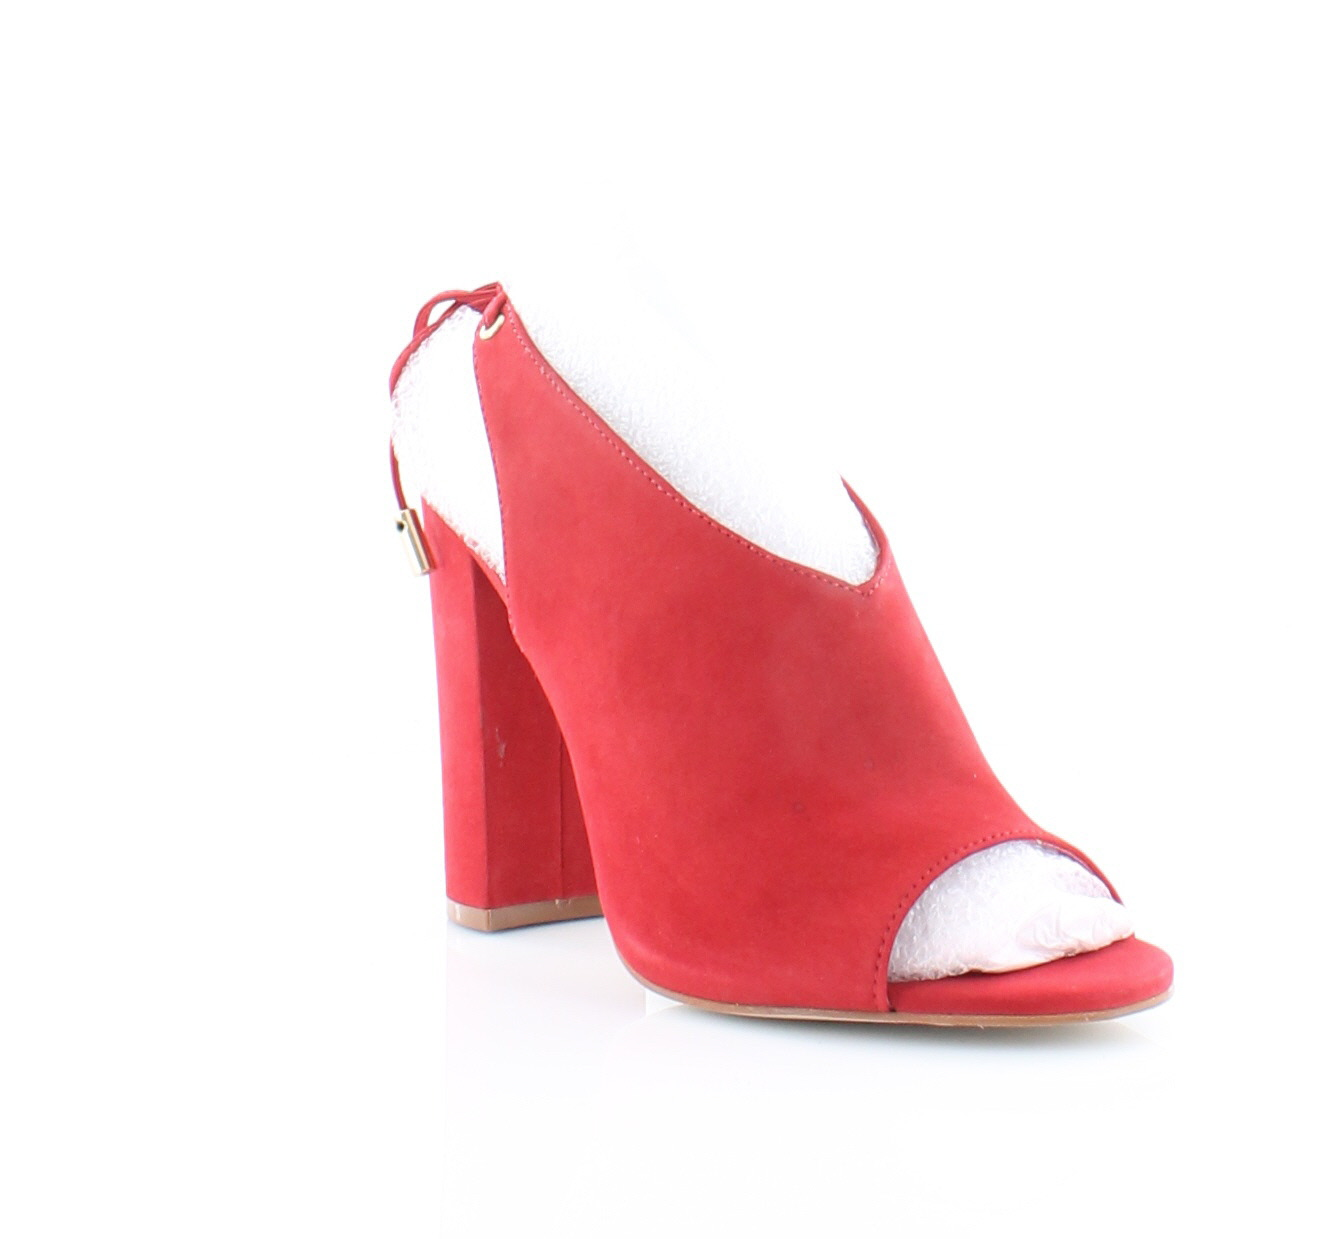 25f30ae11ae Steve Madden New Saffron Red Womens Shoes Size 7.5 M Heels MSRP  129 ...